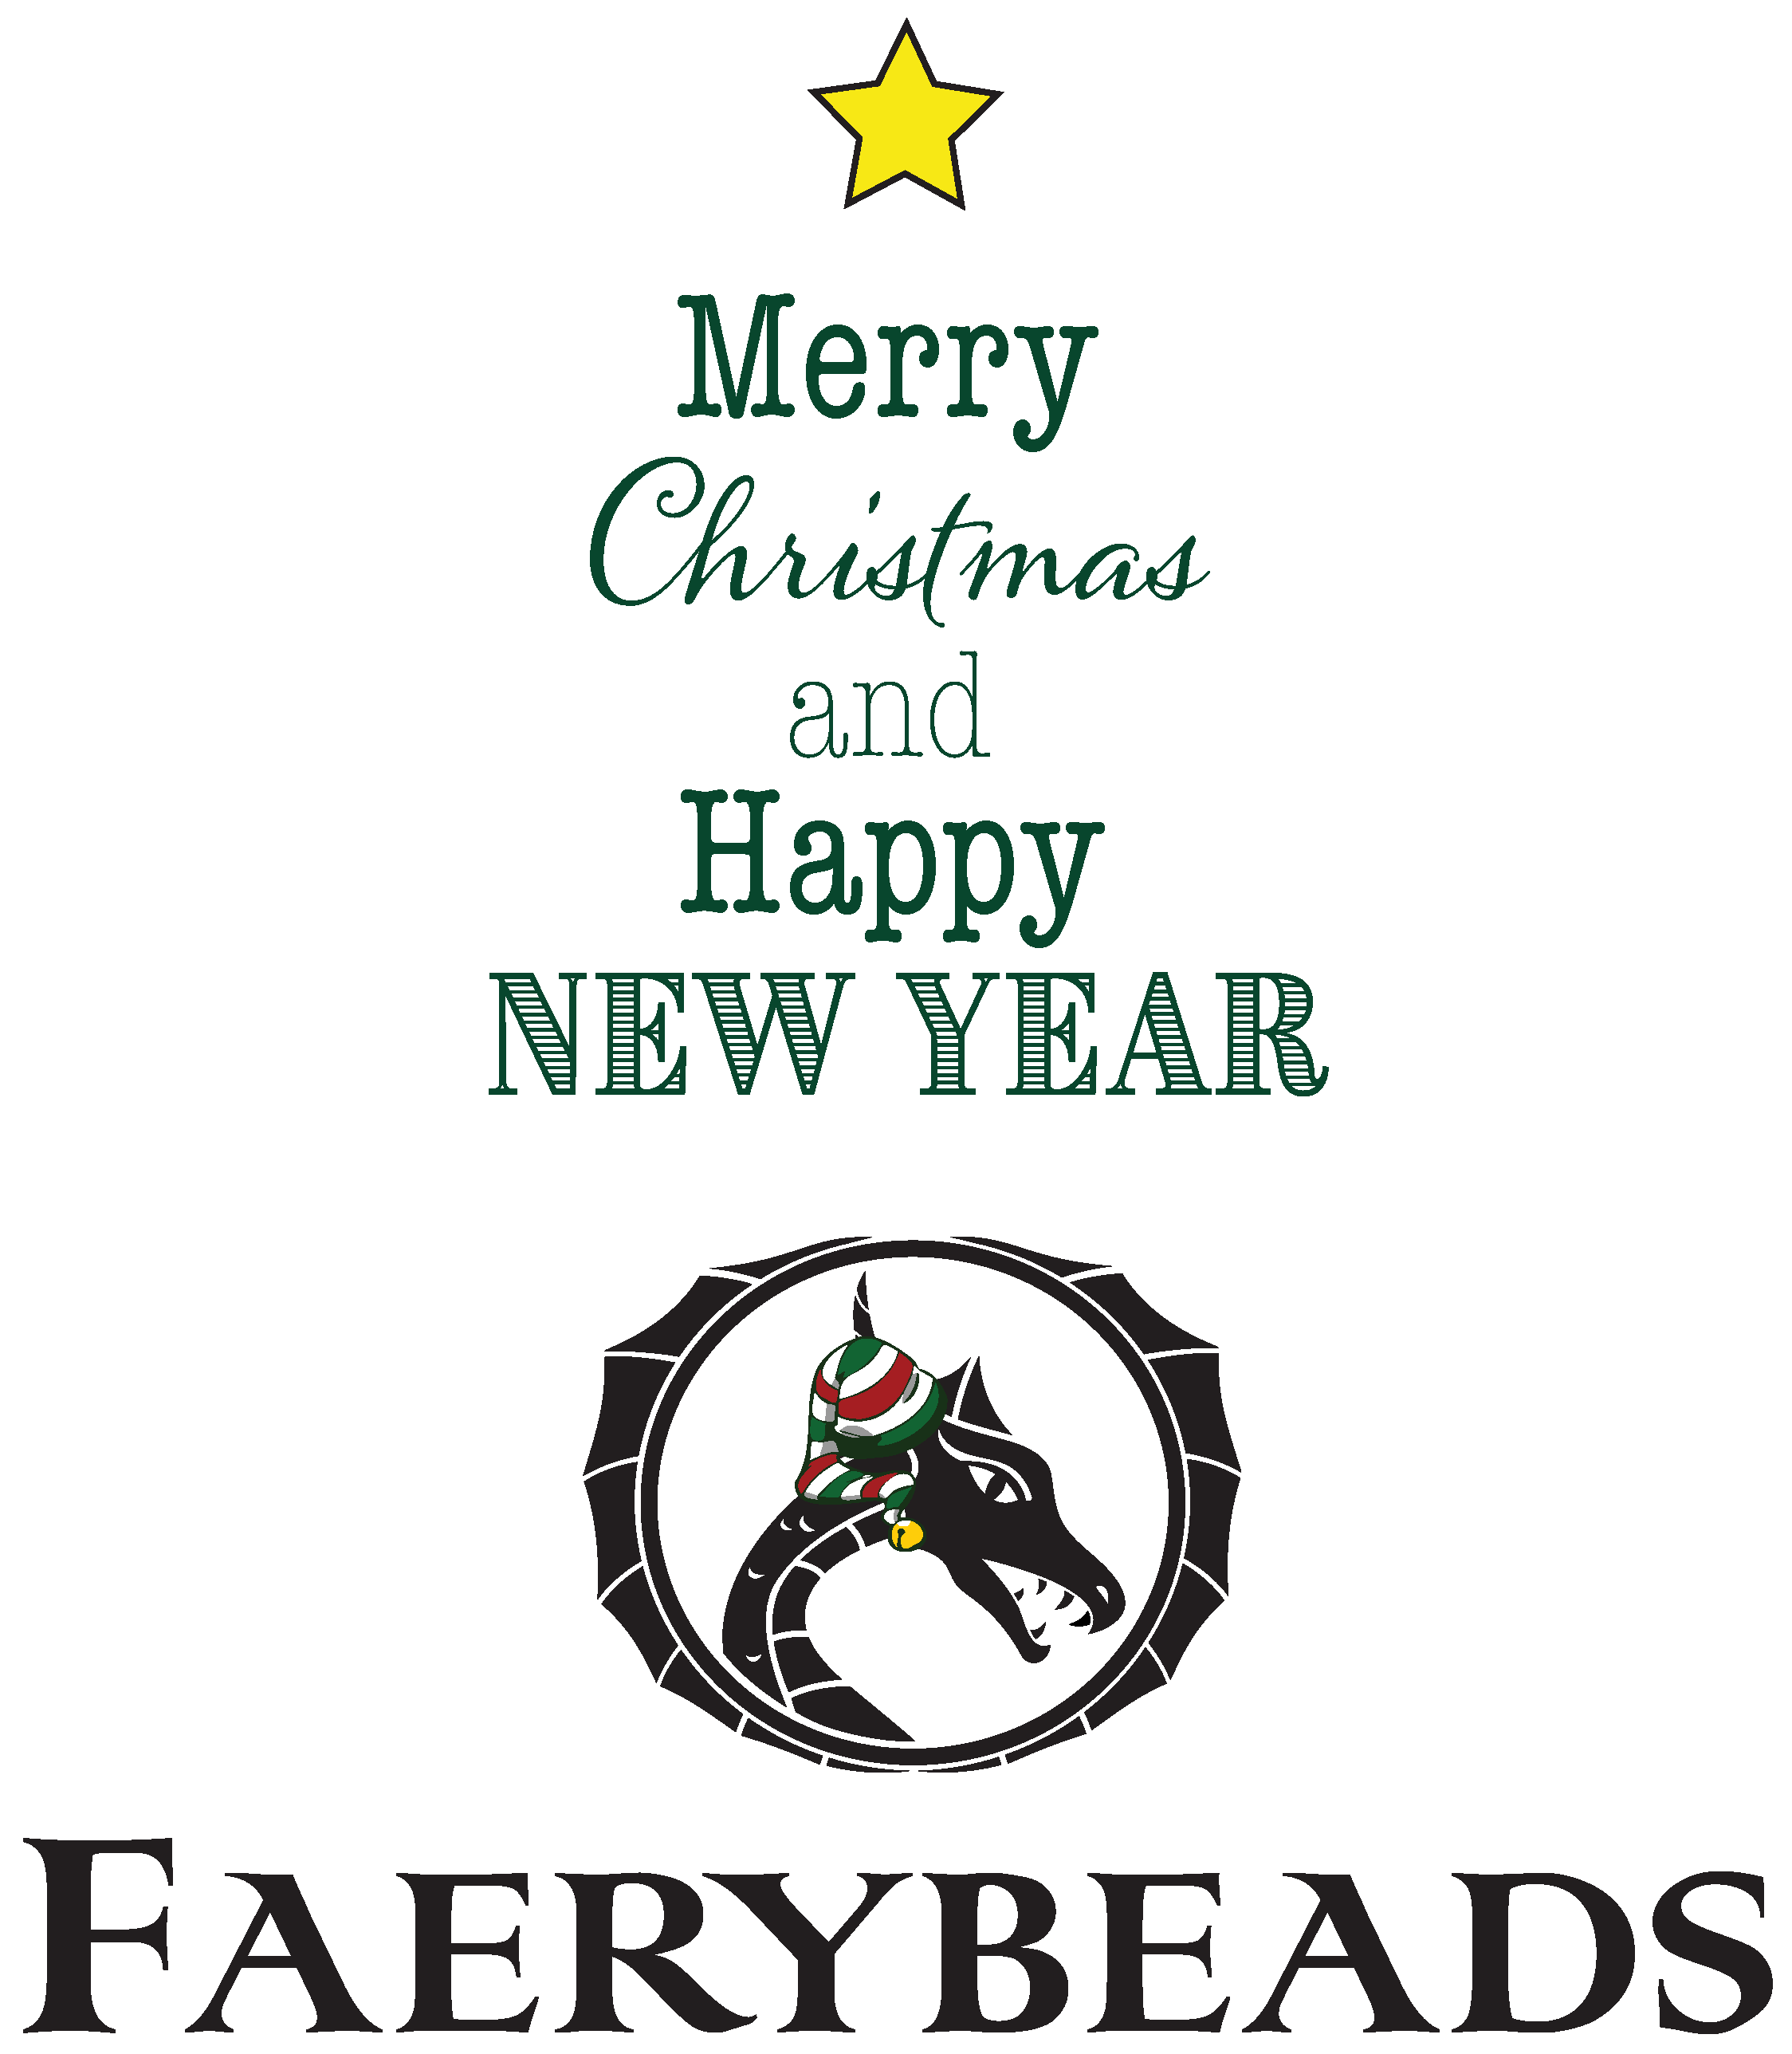 From us to you! Merry Christmas & Happy and Healthy 2021 Faeryb12